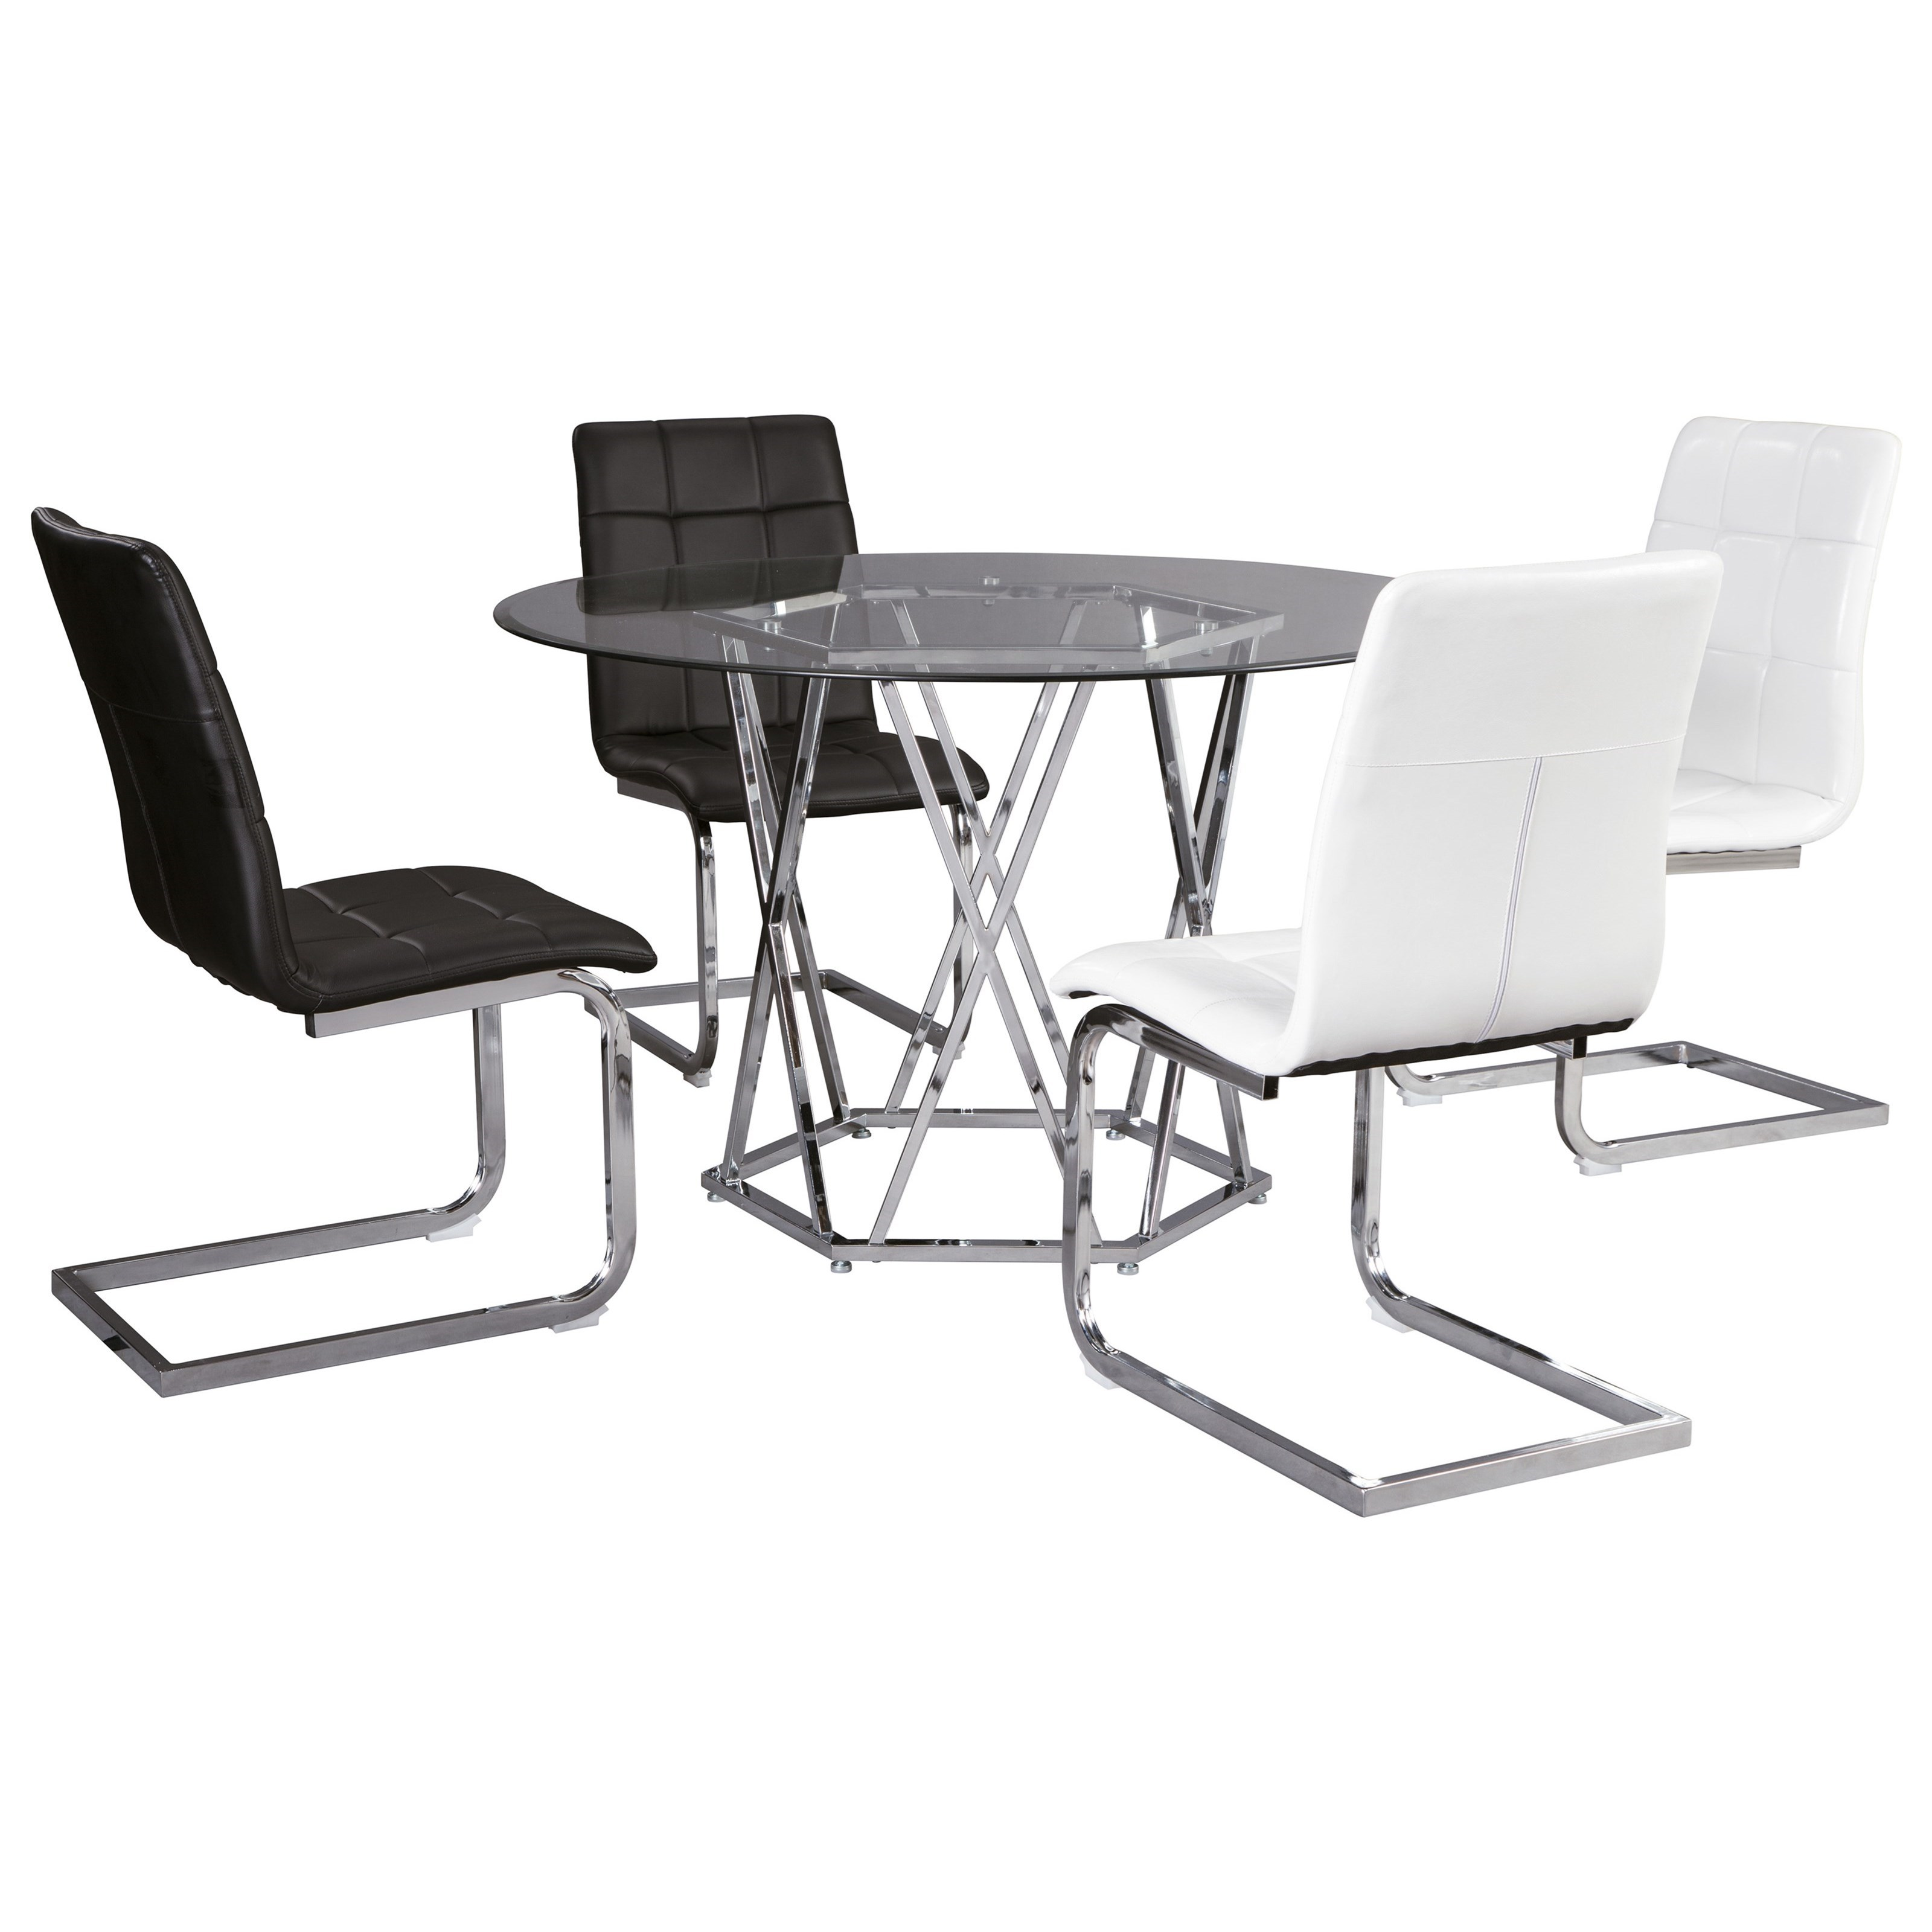 Signature Design By Ashley Madanere Contemporary 5 Piece Dining Set With Glass Top Royal Furniture Dining 5 Piece Sets